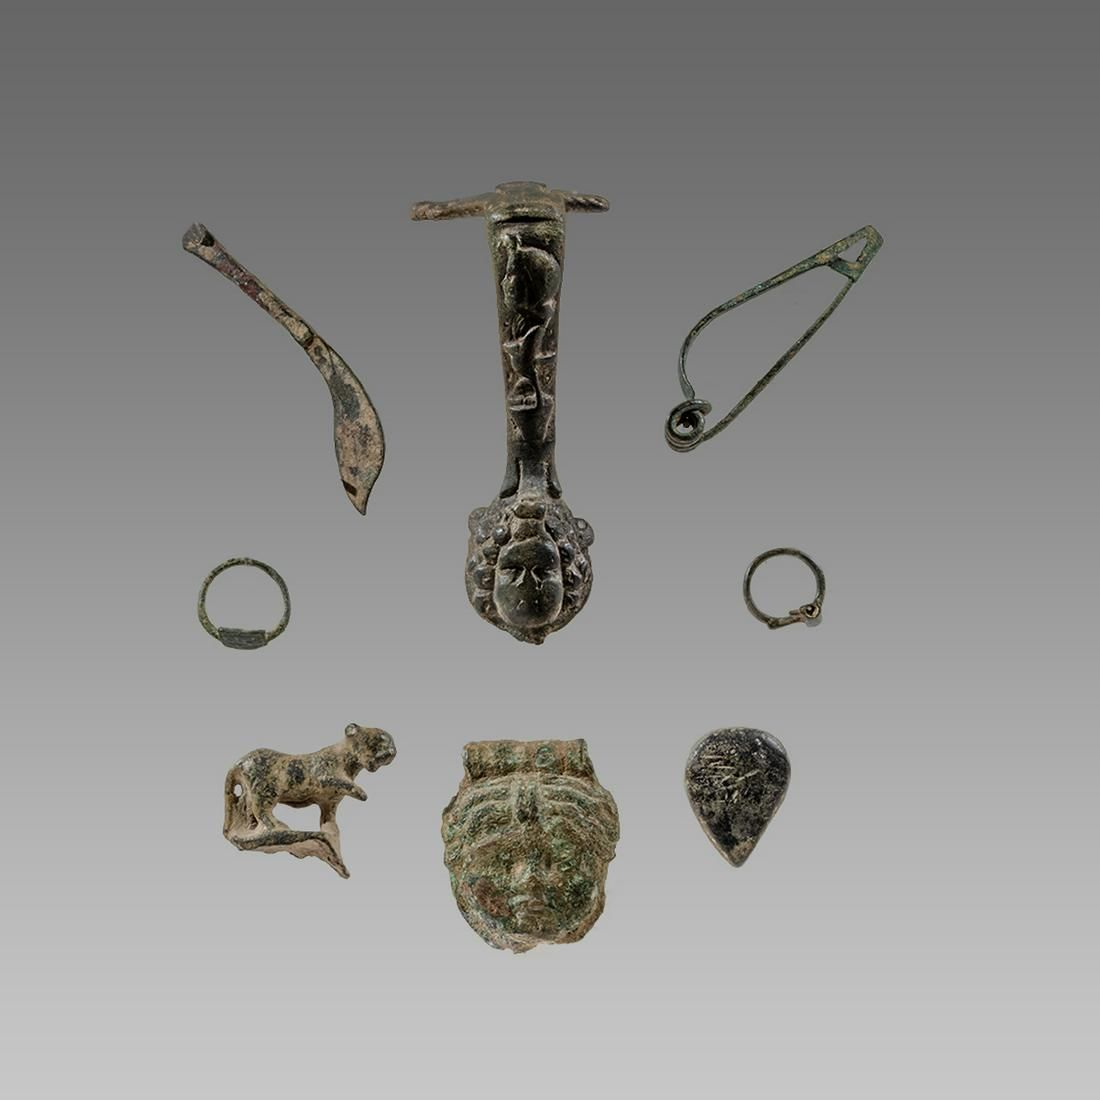 Collection of 8 Ancient Roman Bronze figures, ornaments